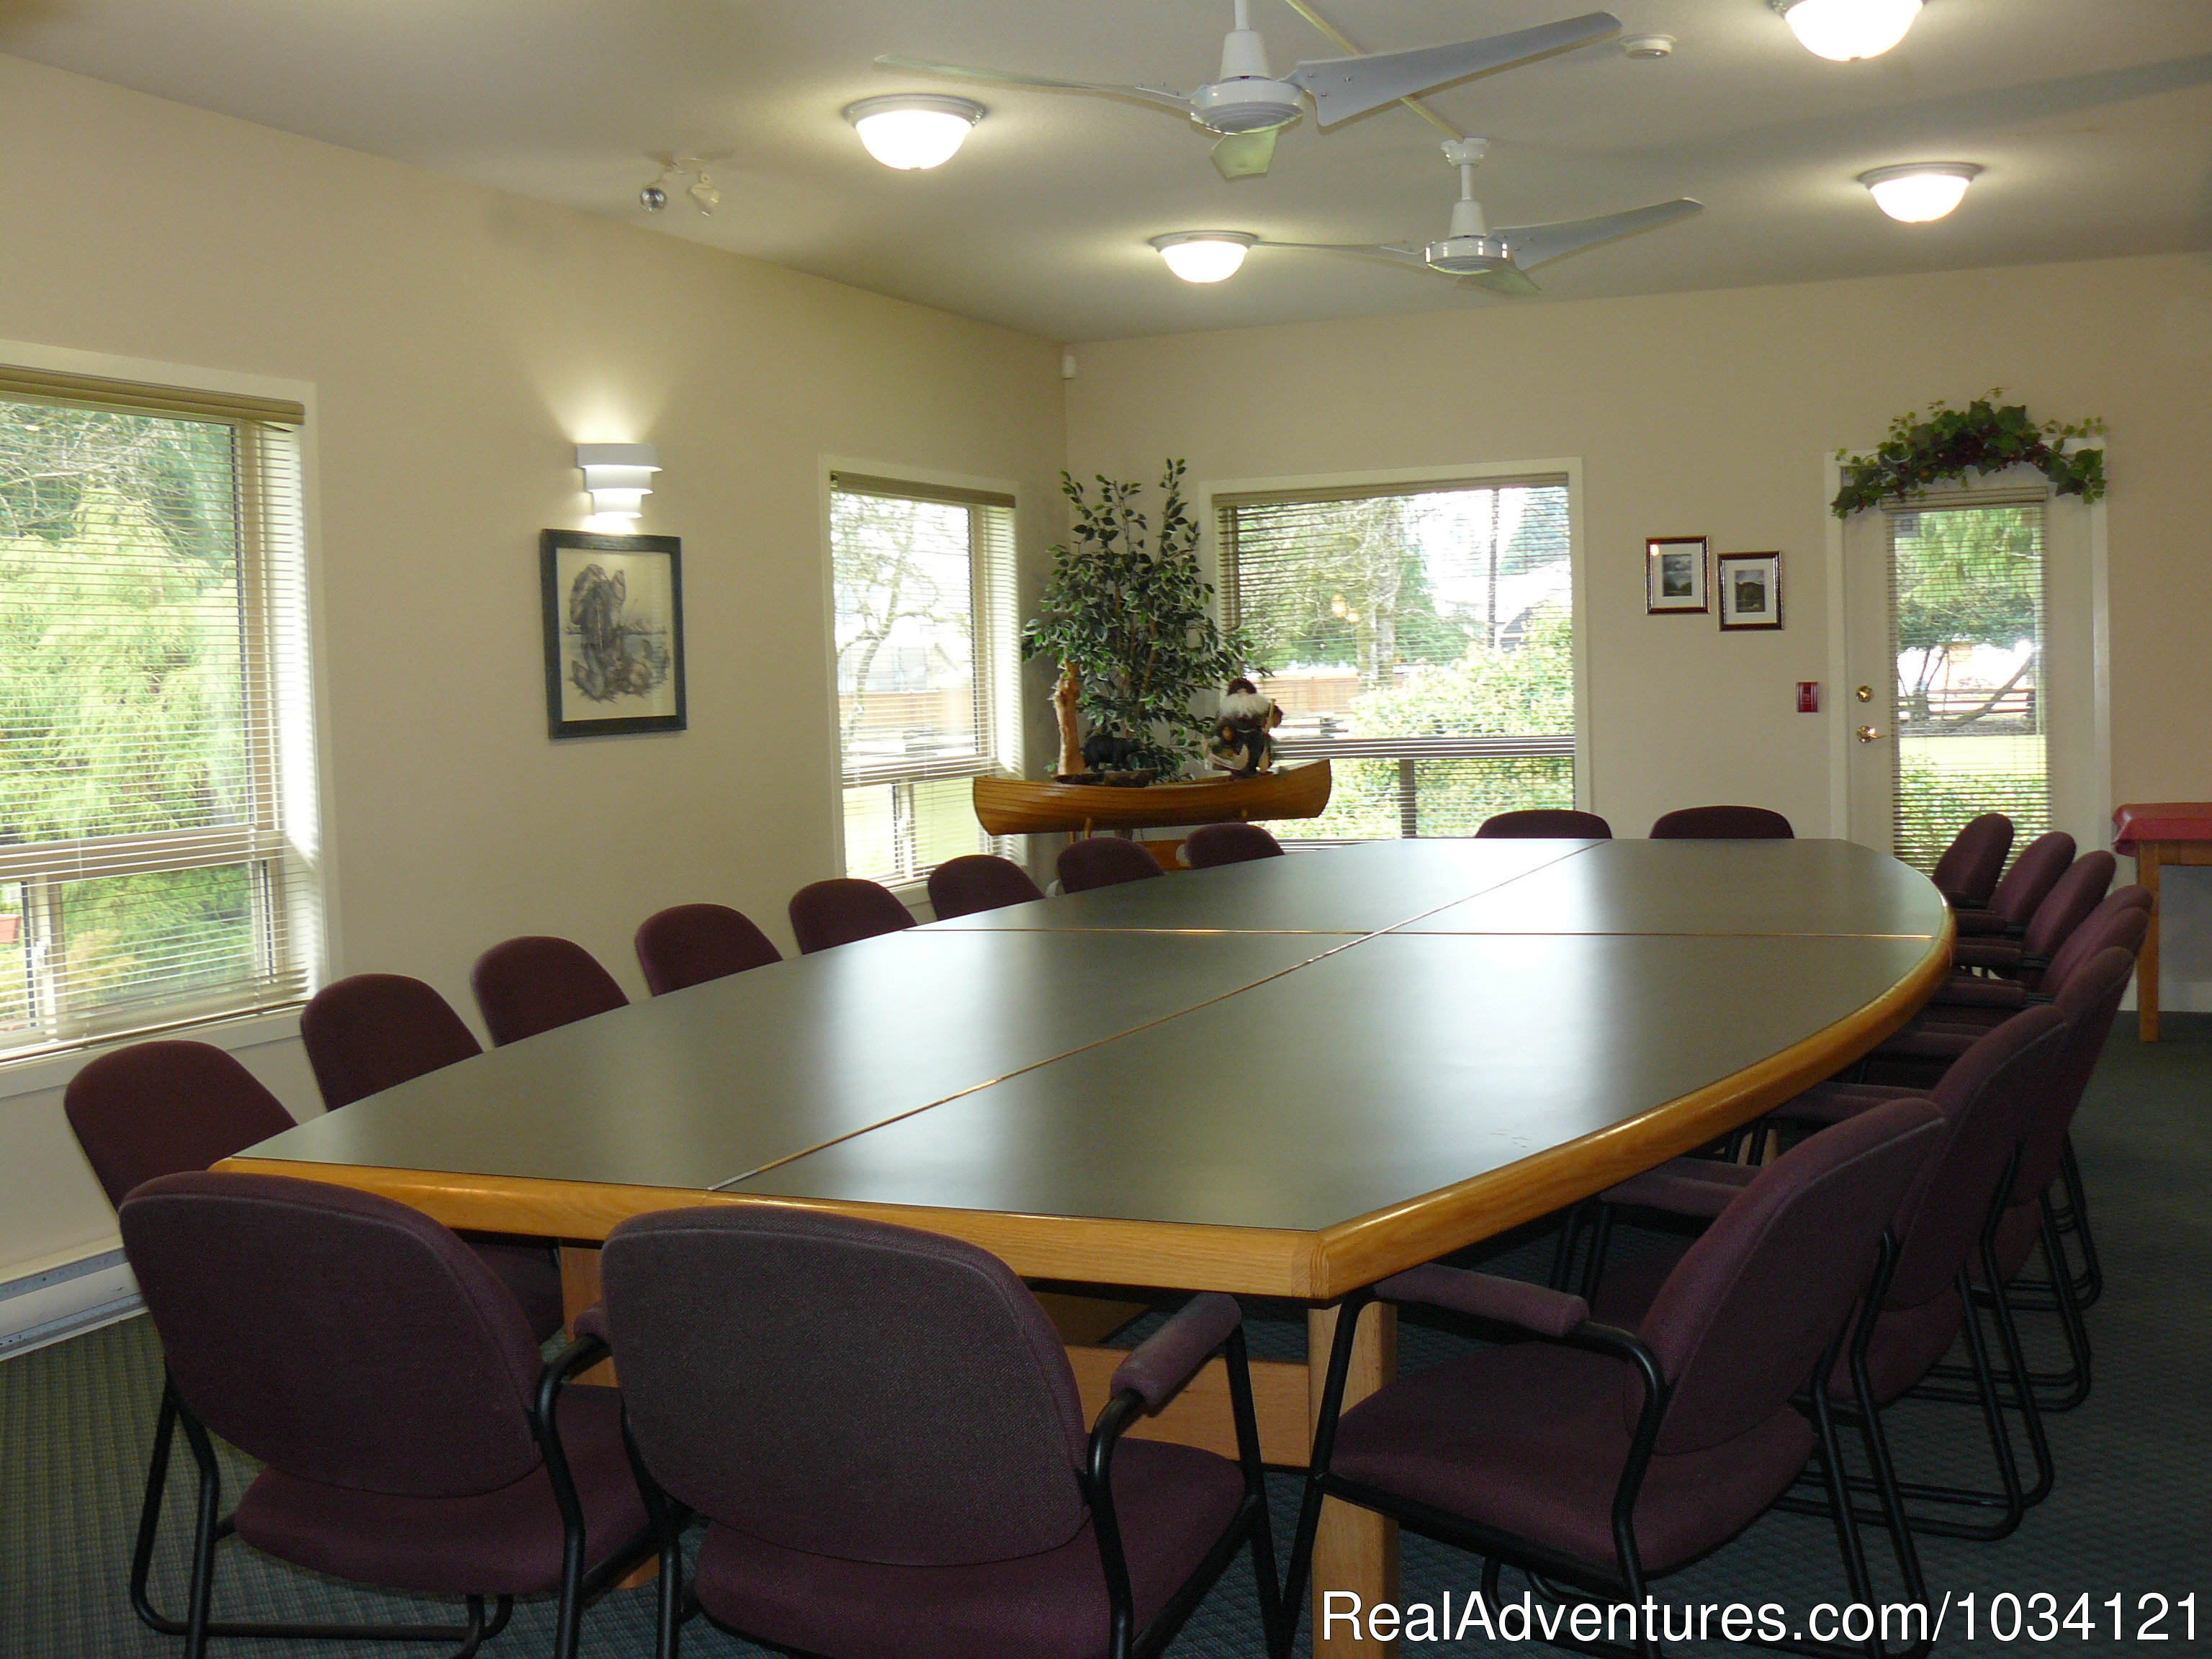 Meeting room facilities for up to 25 guests. | Image #11/26 | Cedar Wood Lodge Bed & Breakfast Inn